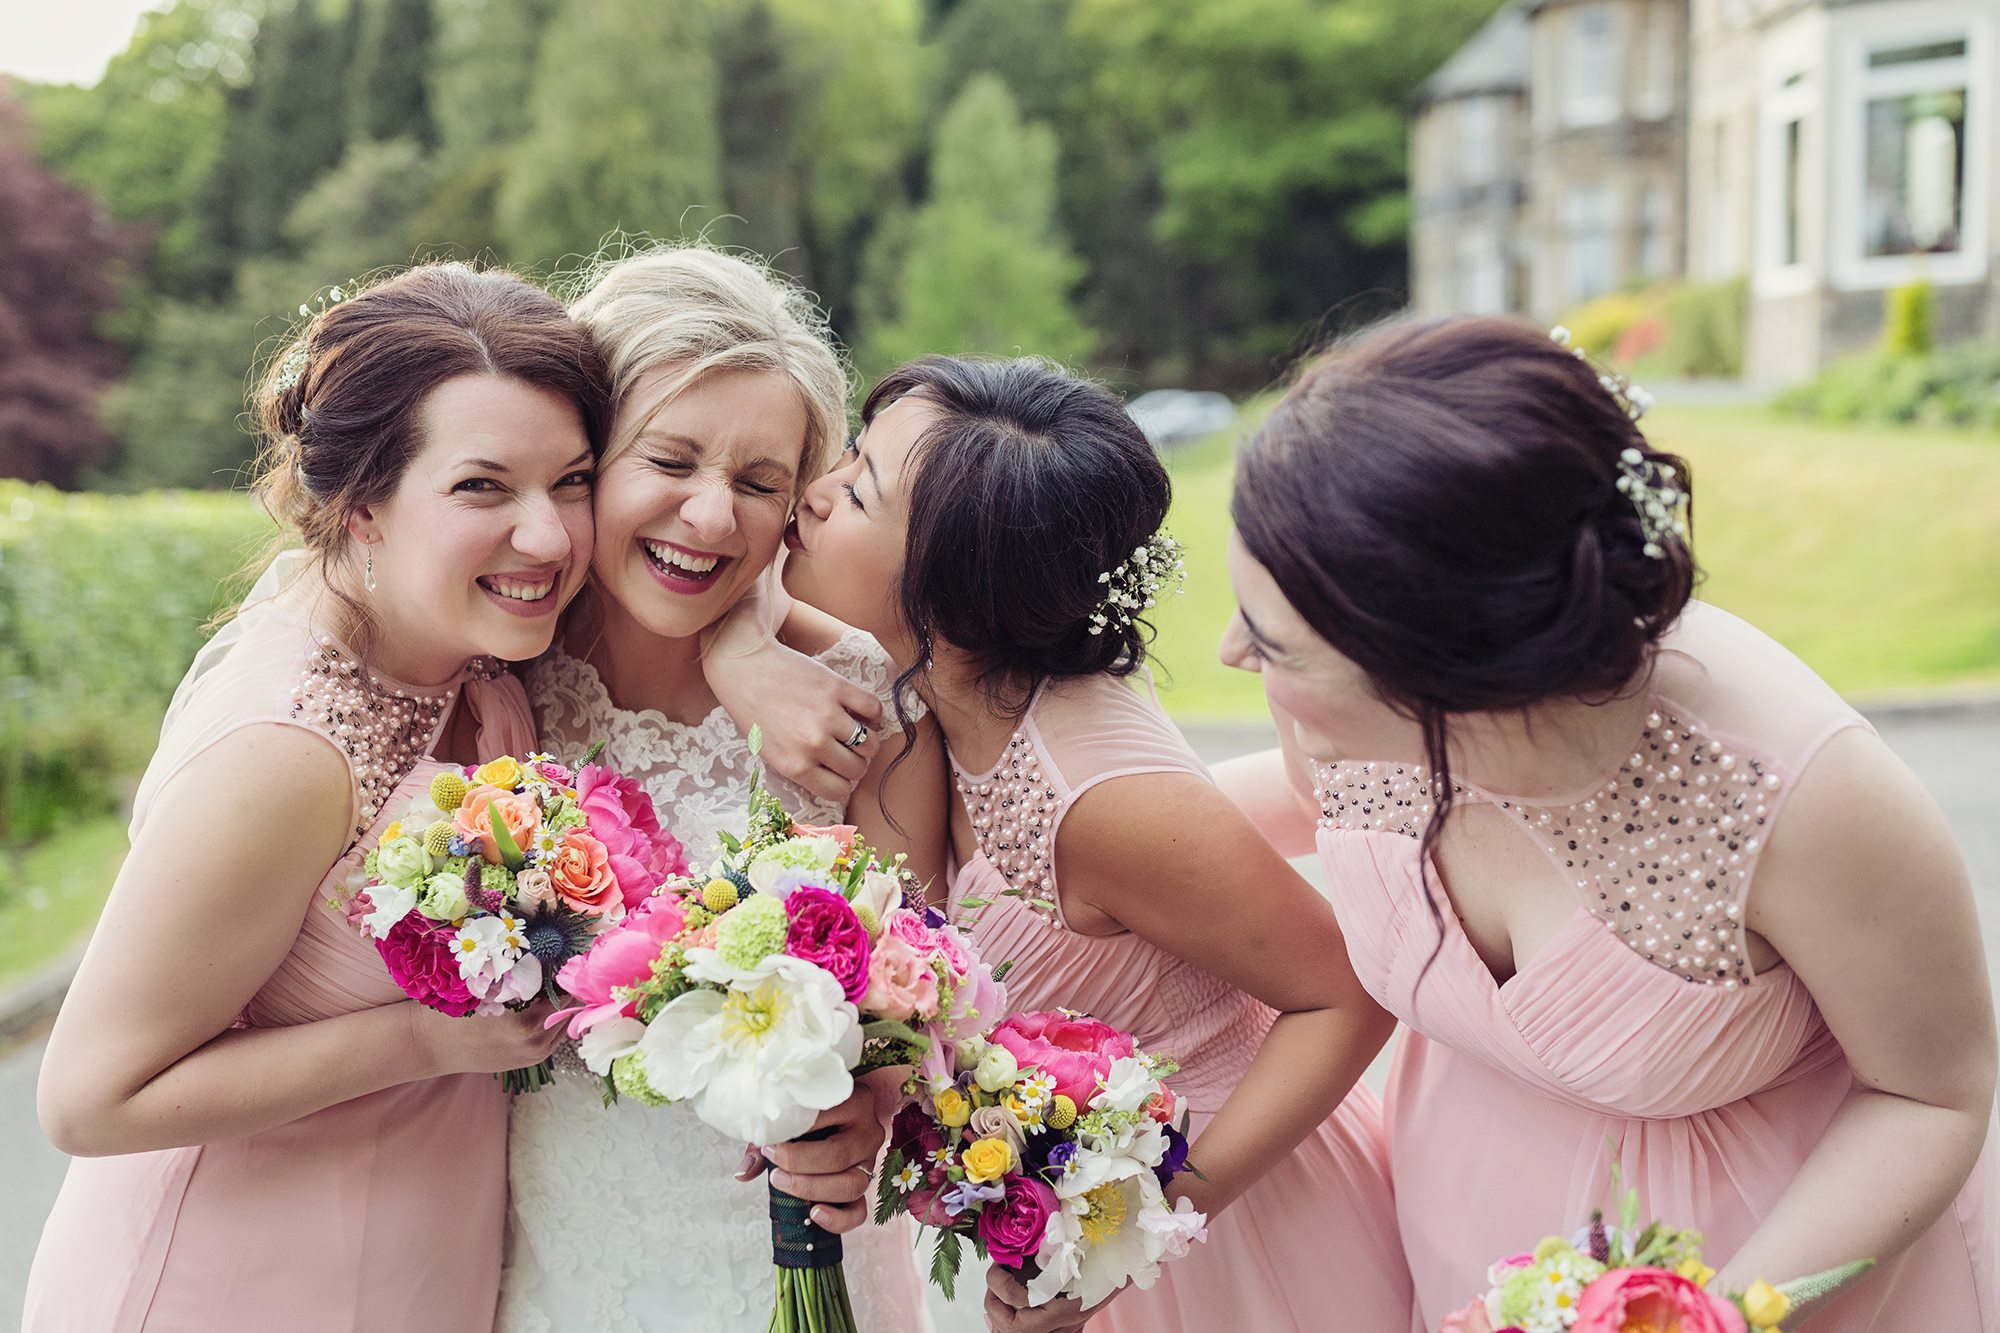 The Bride and Her Bridesmaids.